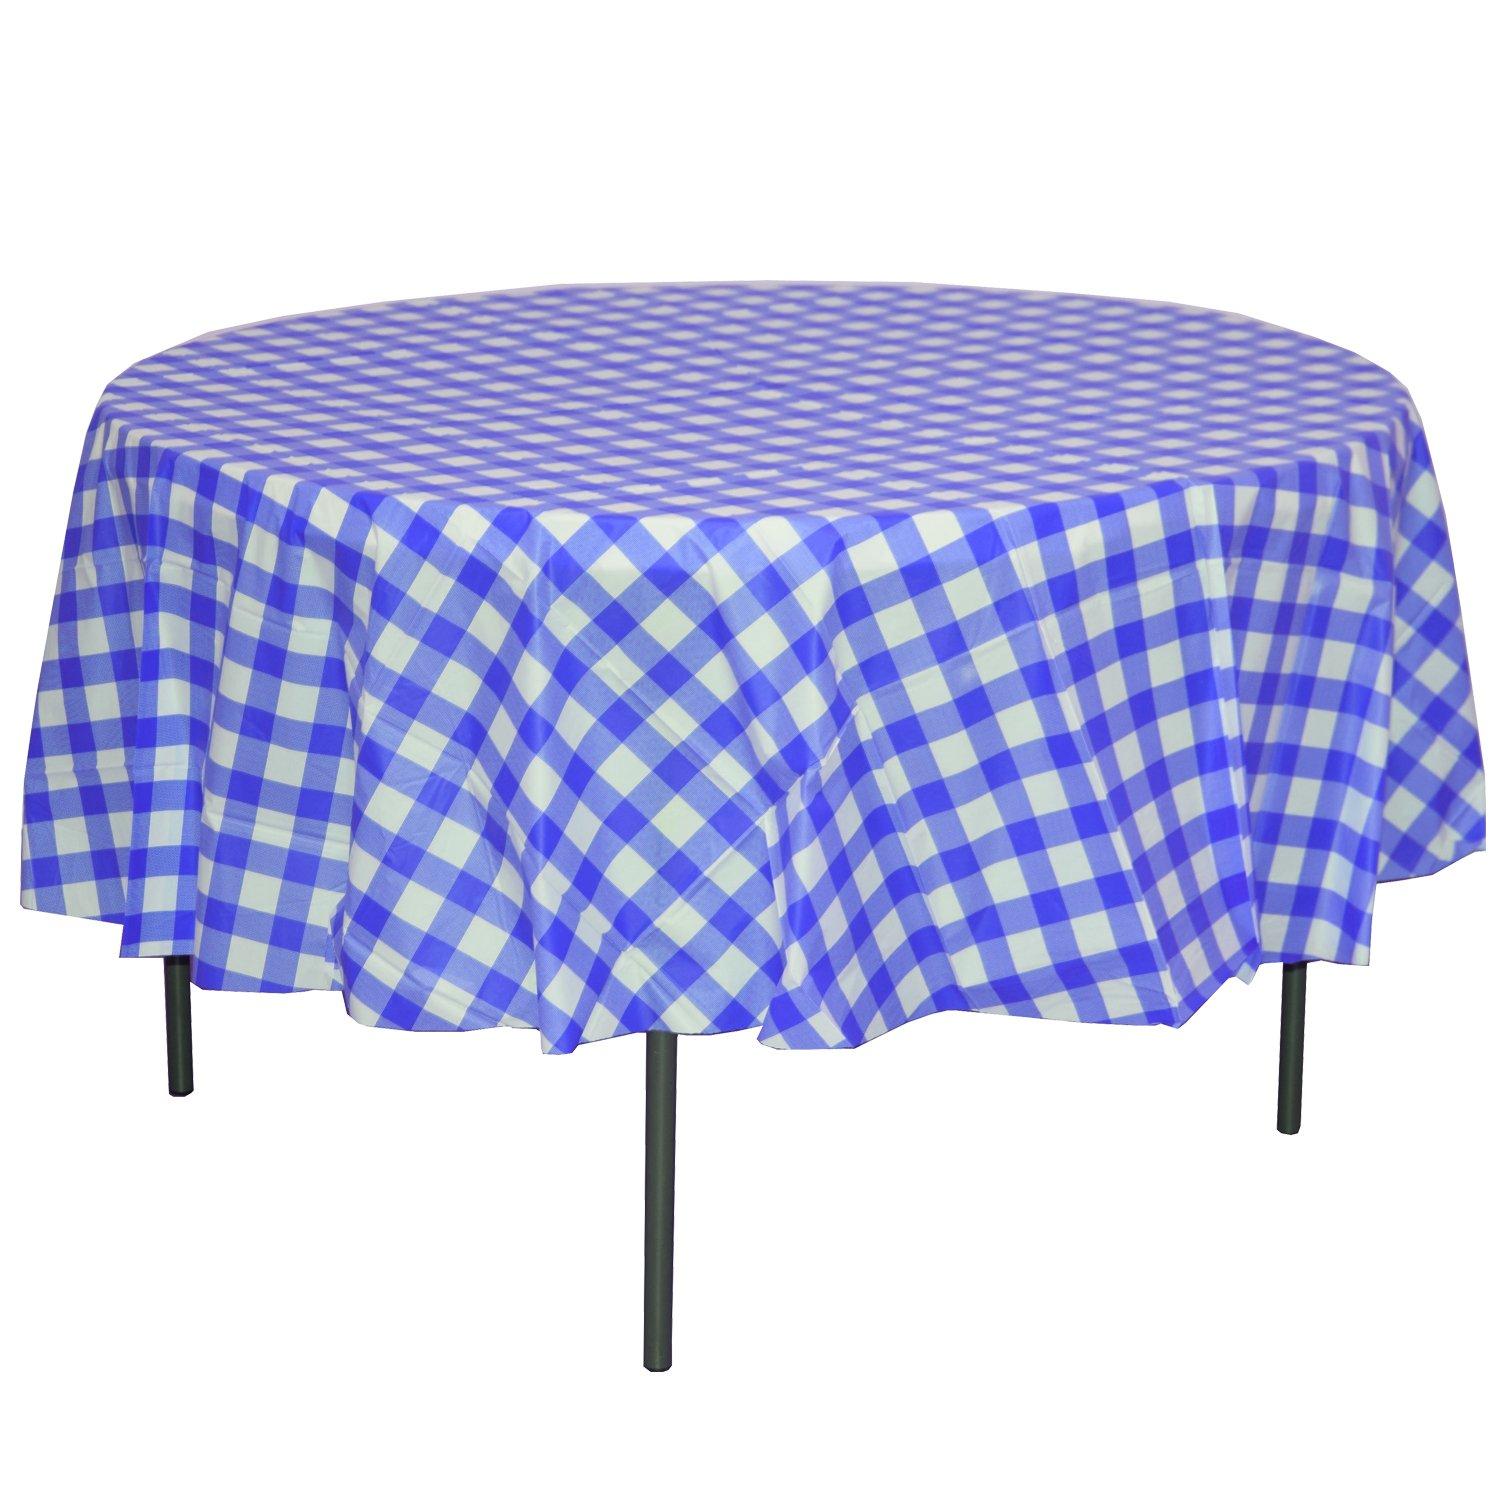 Exquisite 12 Pack Premium Round Plastic Dark Blue & White Checkered BBQ Tablecloth - Gingham Checkerboard Disposable Plastic Tablecloth 84 inch. Round